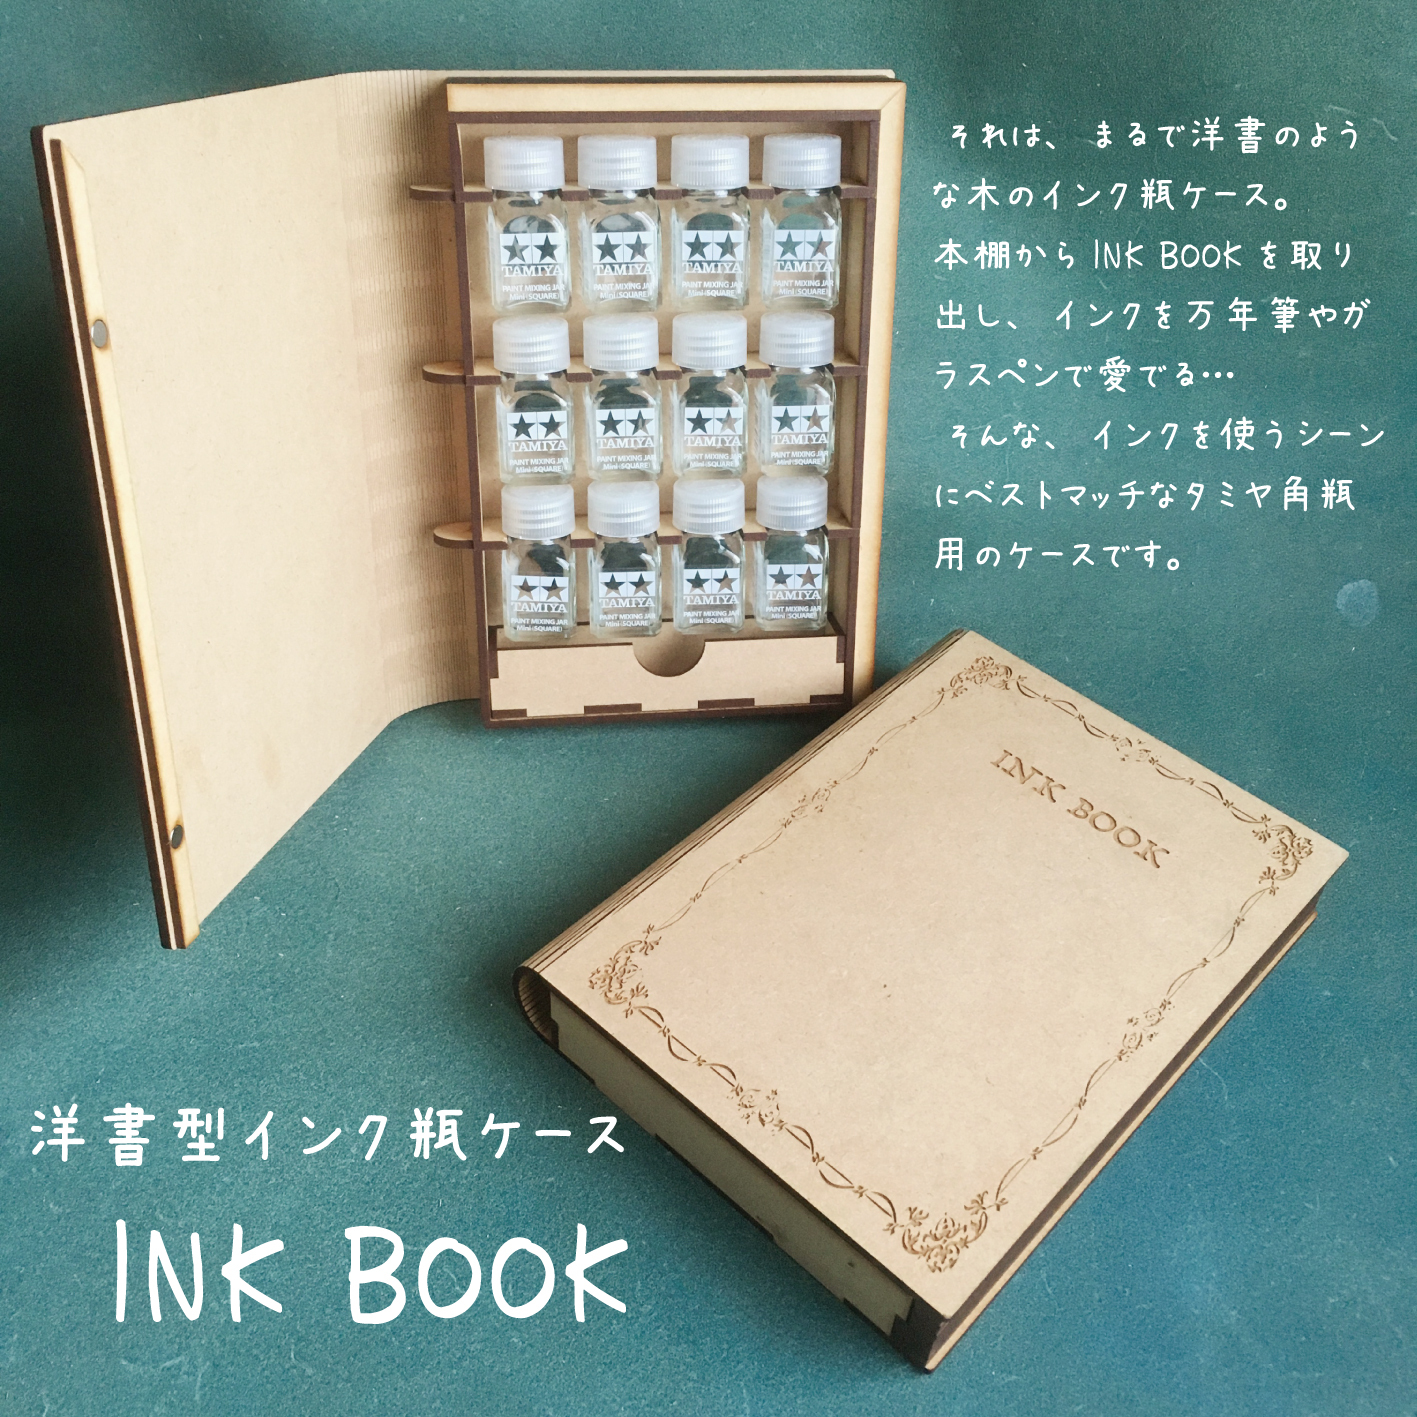 INK BOOK for タミヤ瓶